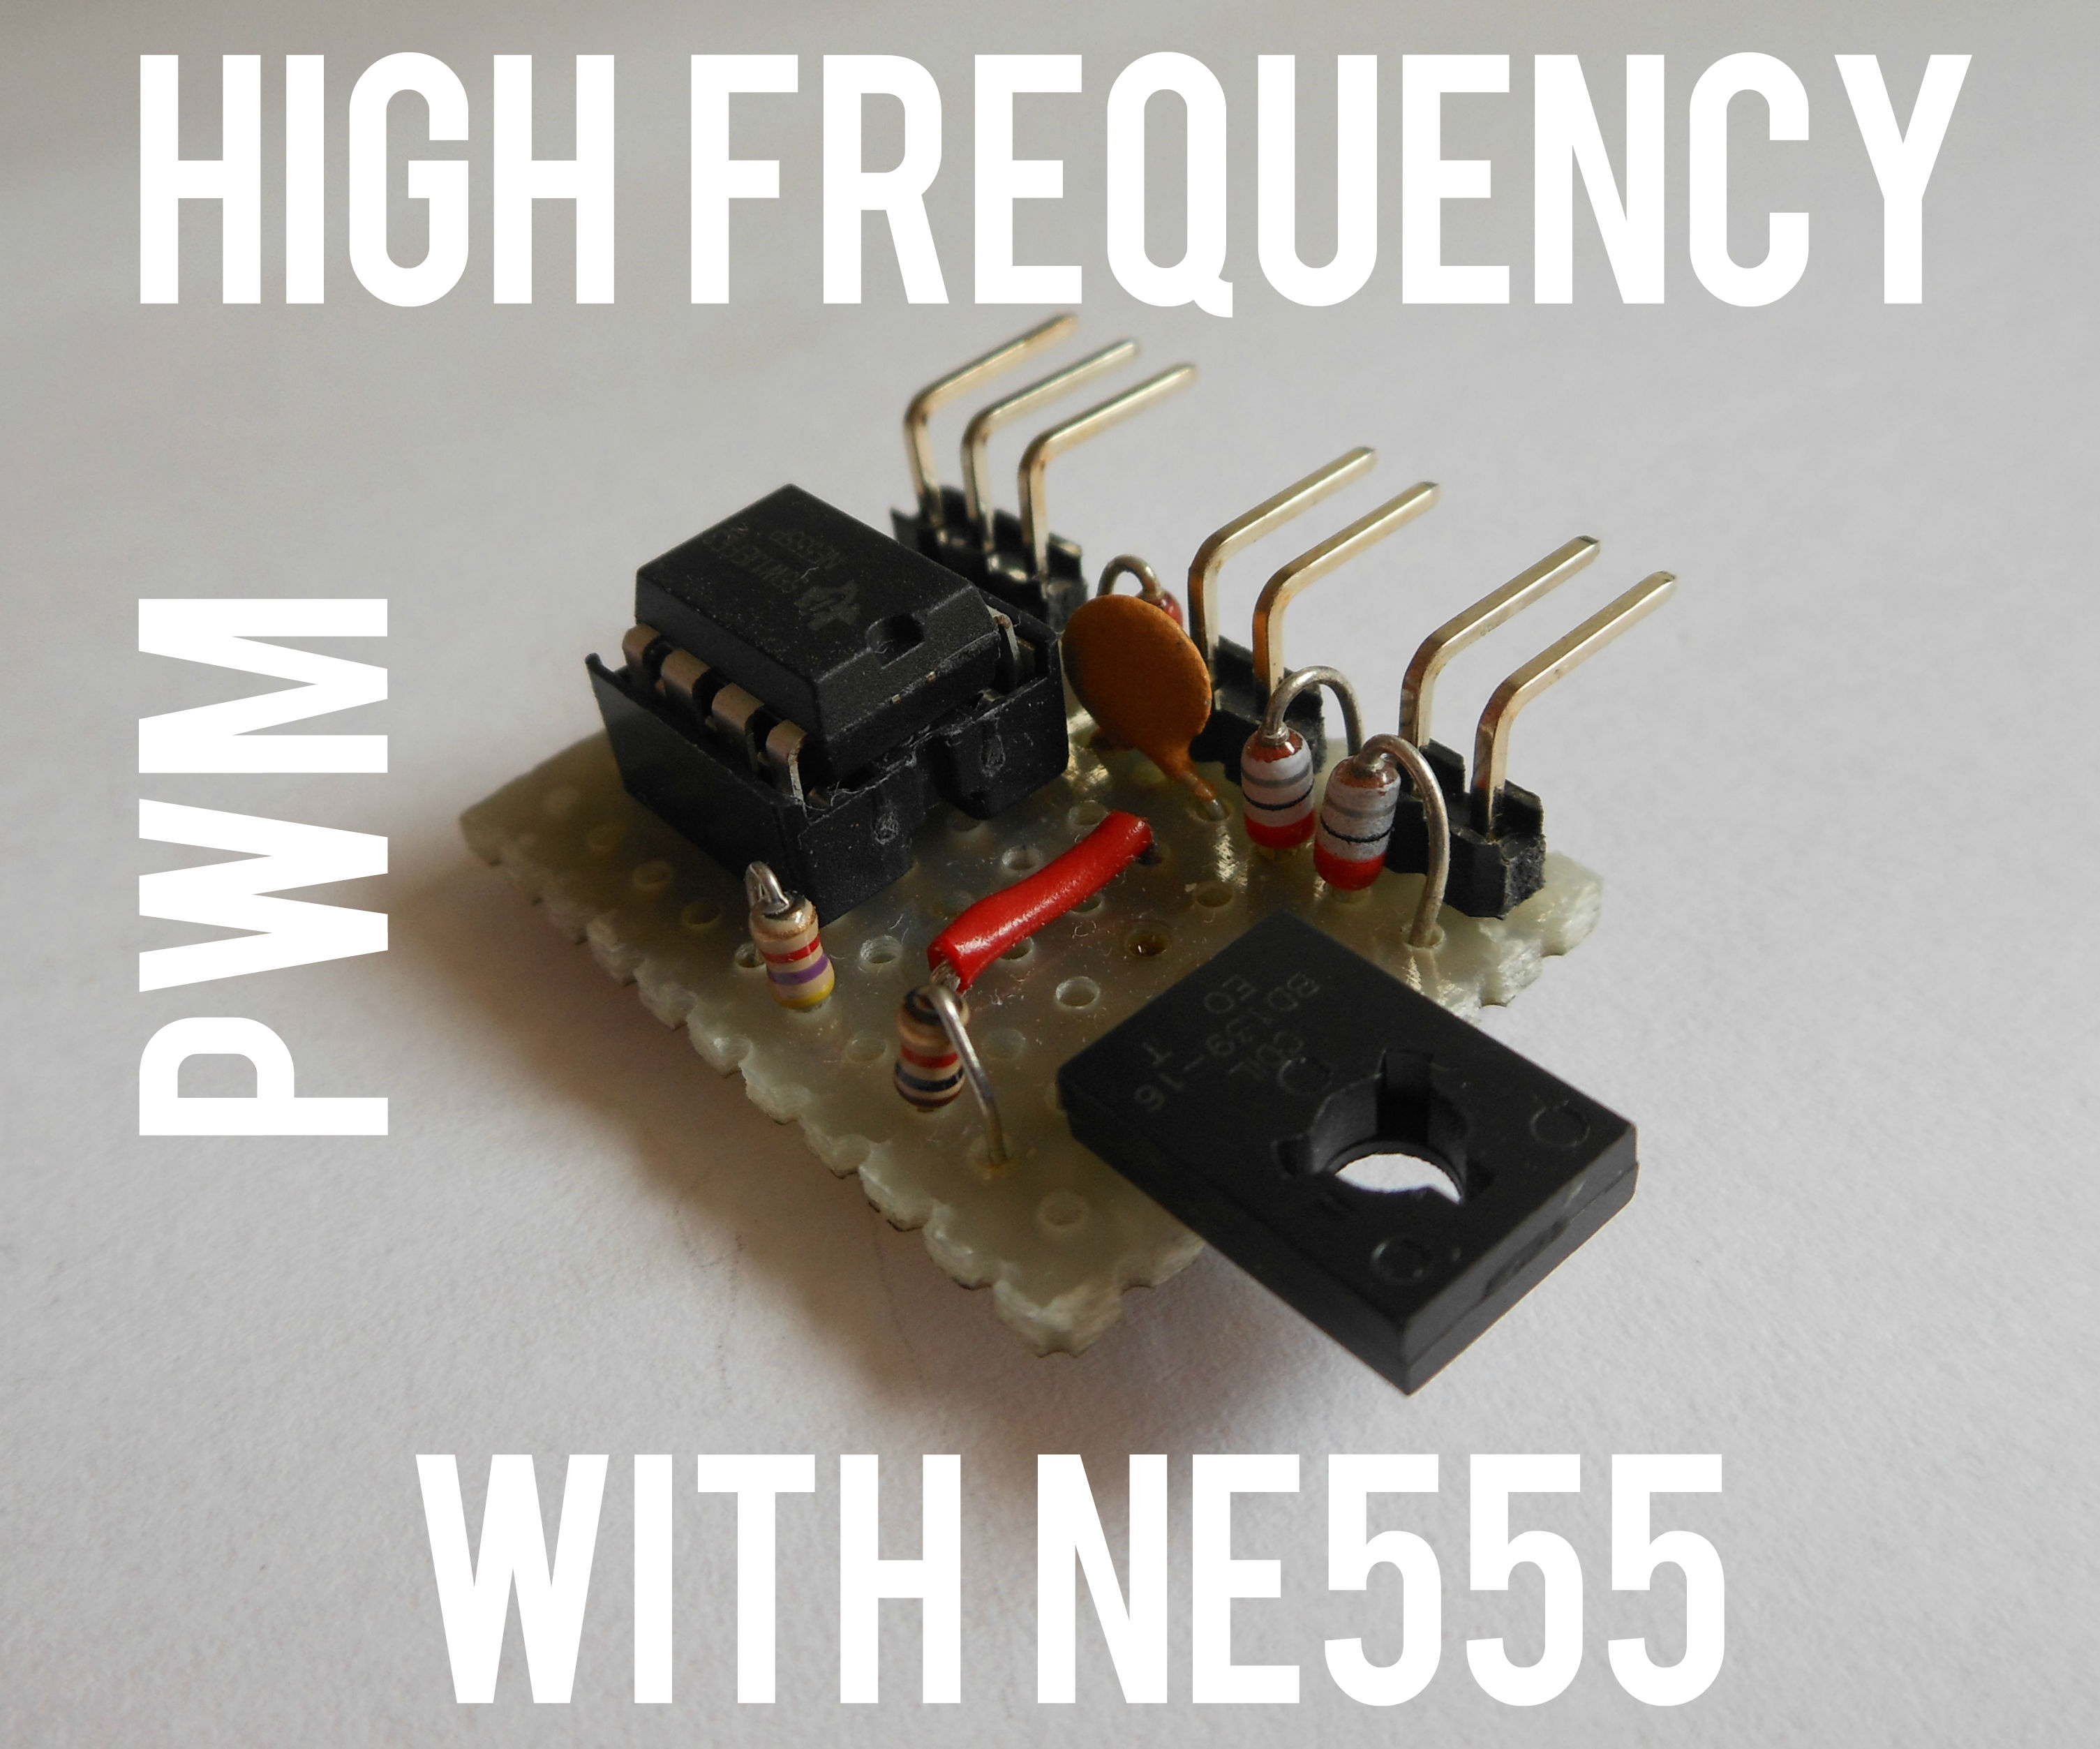 Simplest High Frequency PWM with NE555